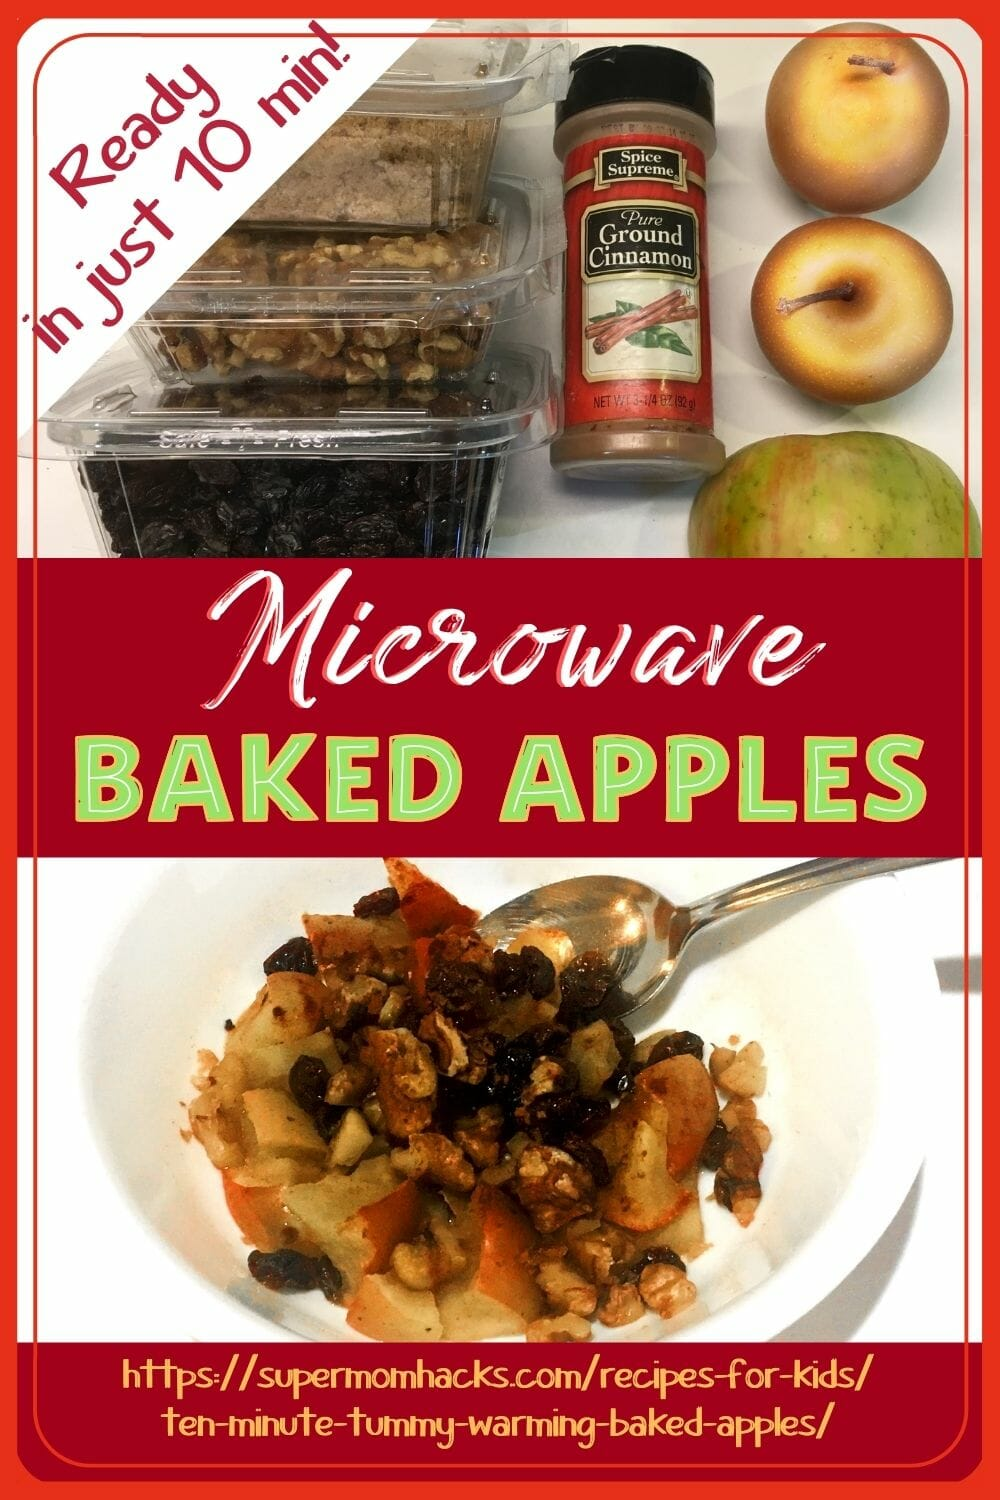 Want a hearty start to your day? These healthy microwave baked apples are as fast and easy to make as they are delicious.